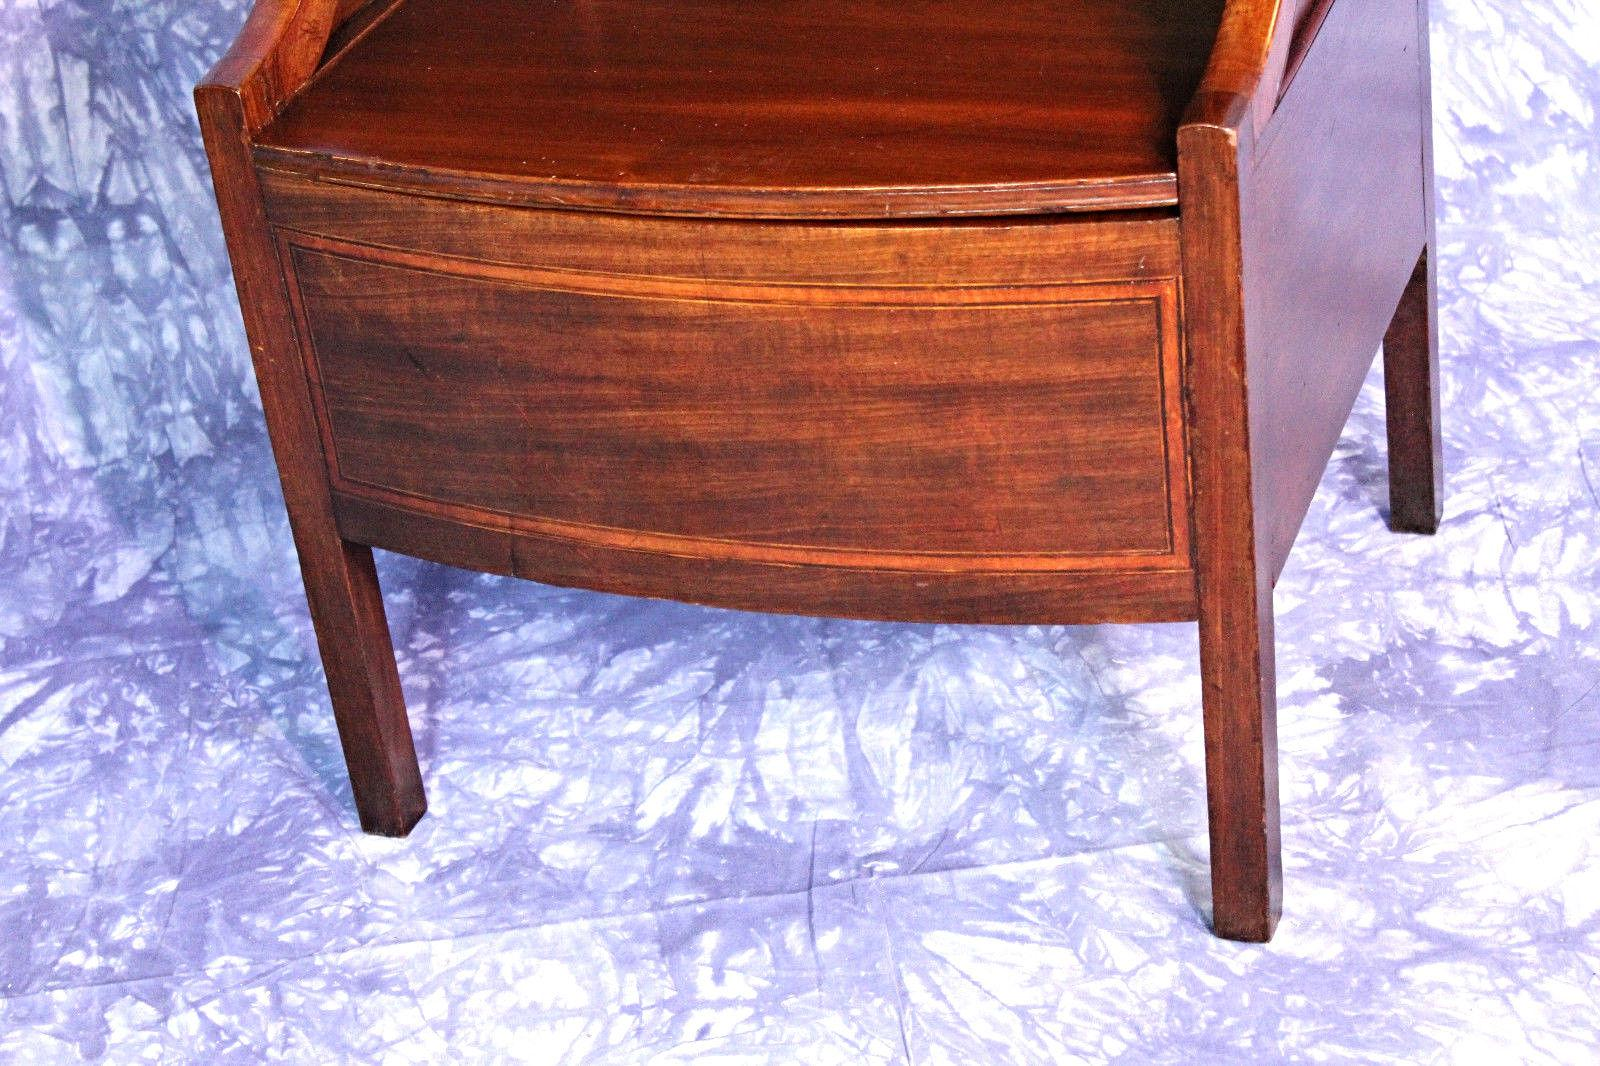 1840 Antique English Mahogany Commode Nightstand End Side Table